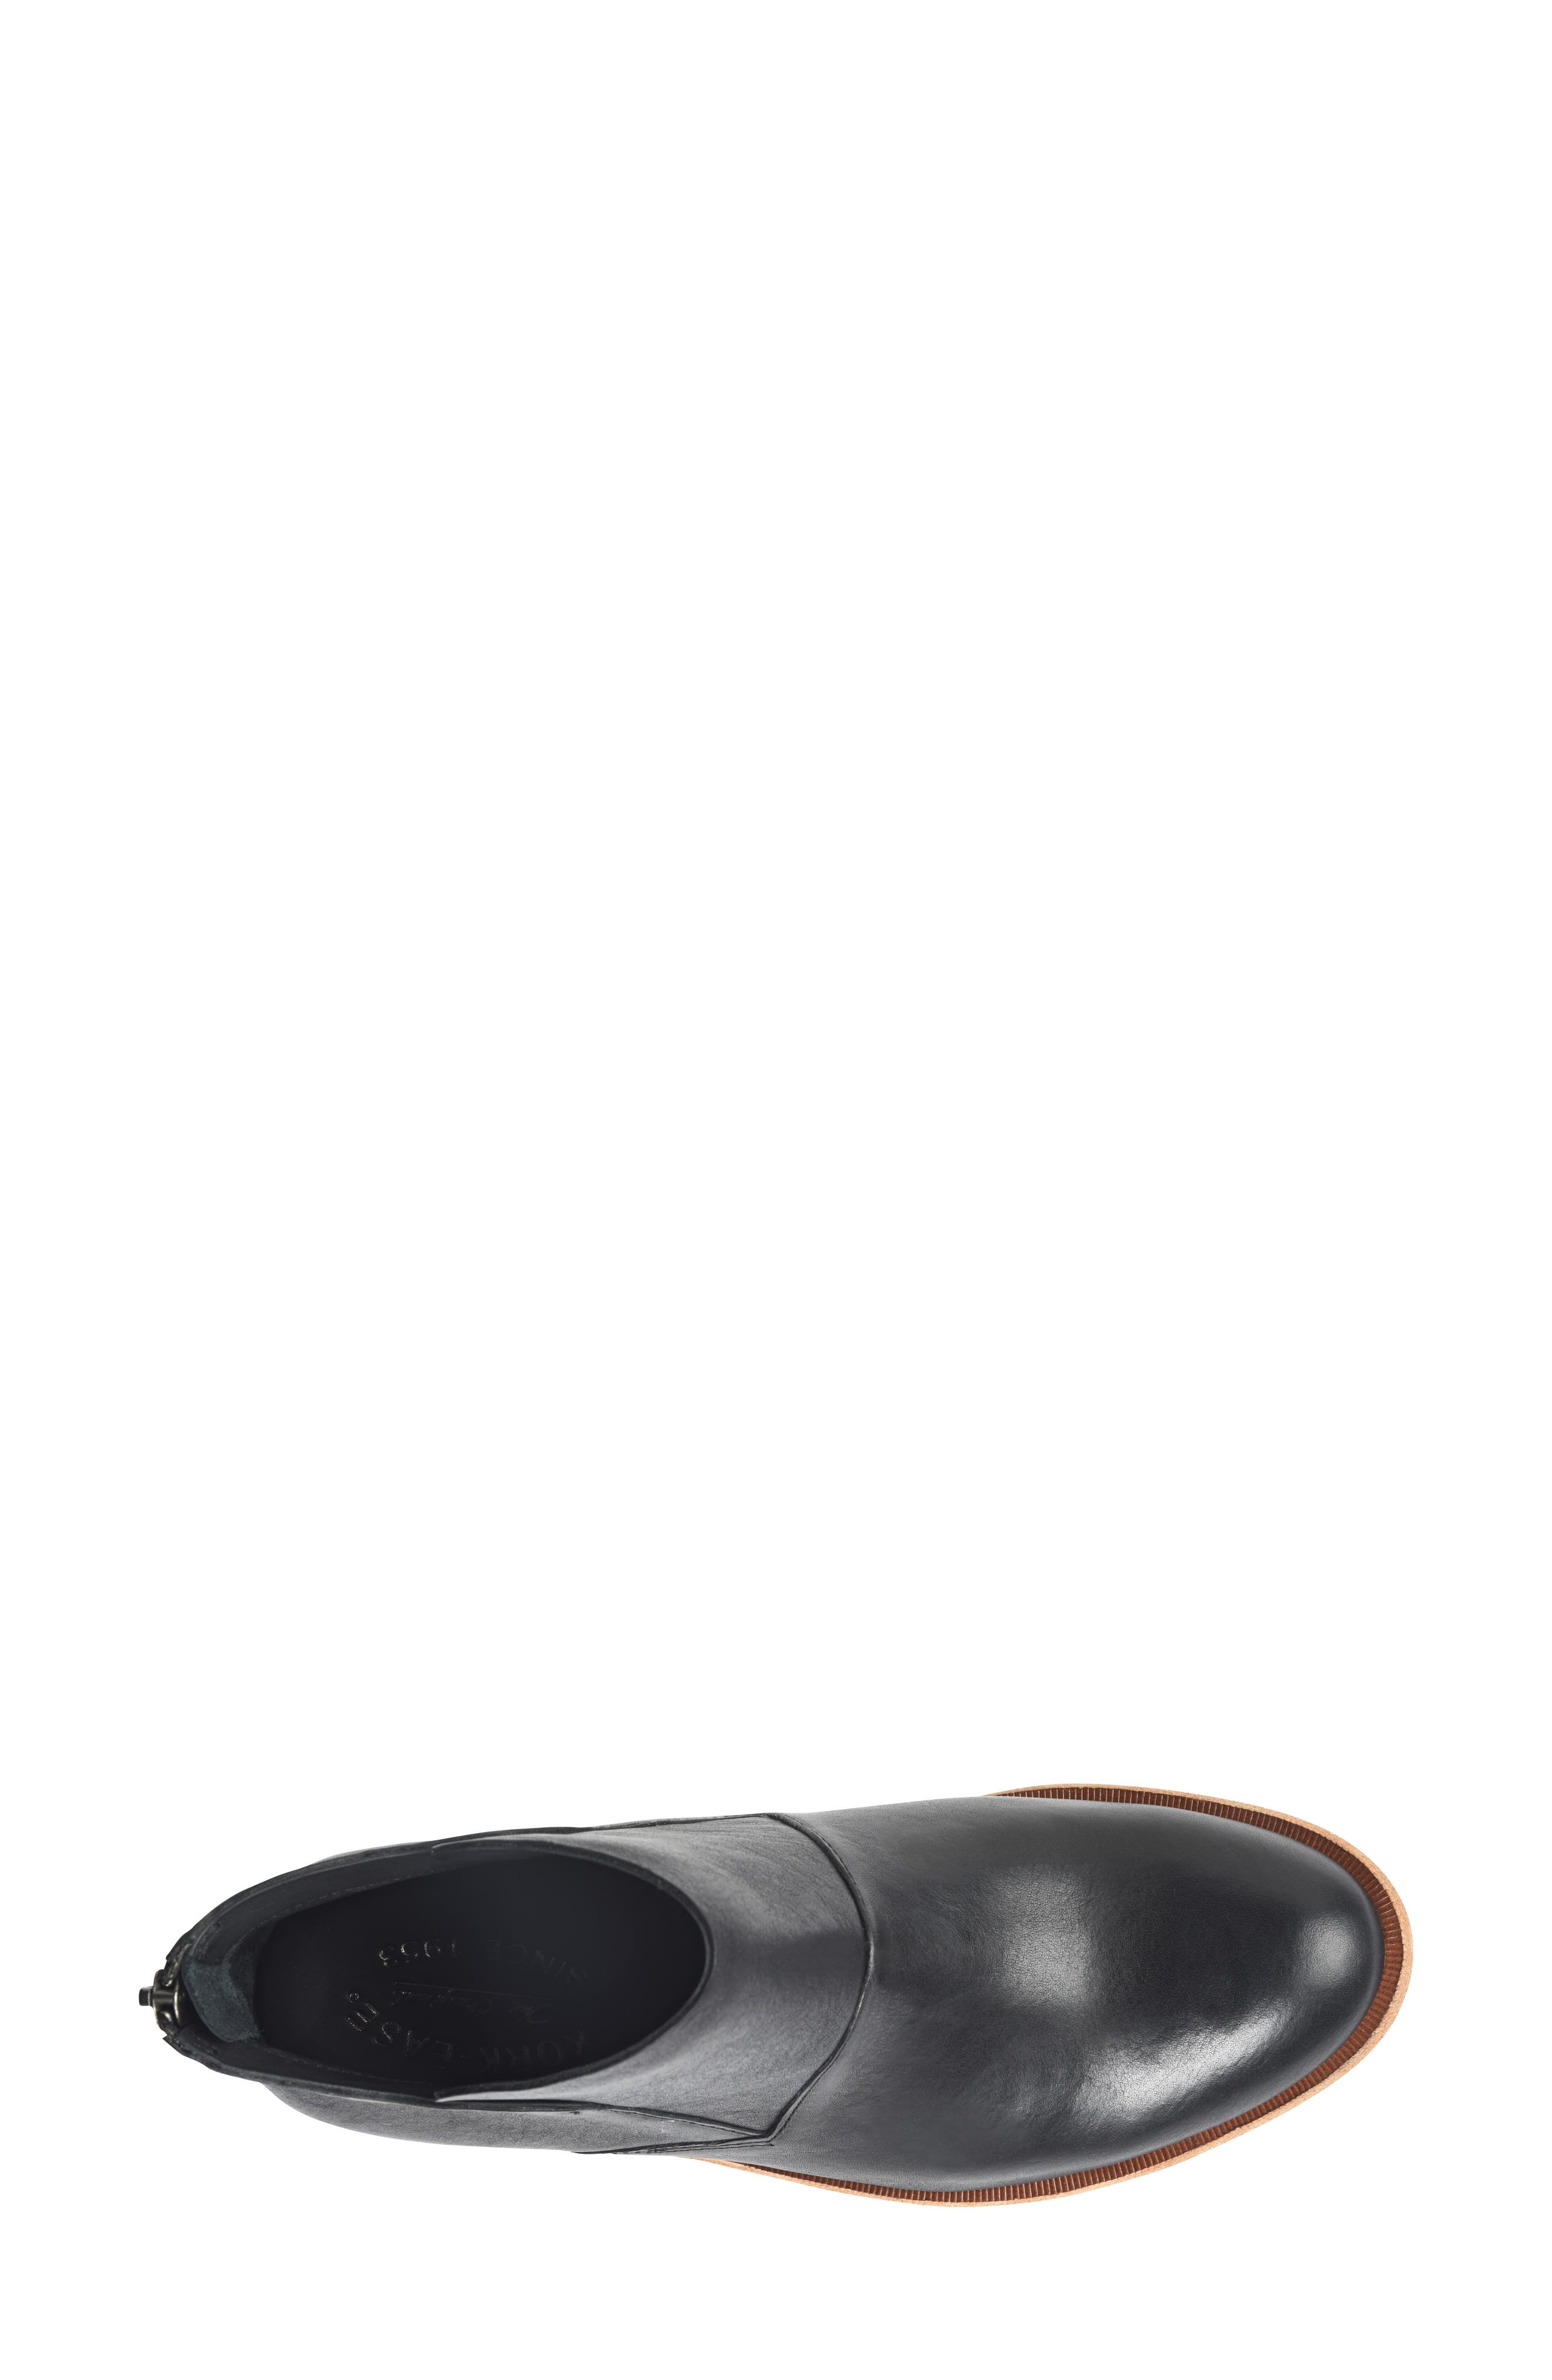 Ryder Ankle Boot,                             Alternate thumbnail 5, color,                             BLACK LEATHER